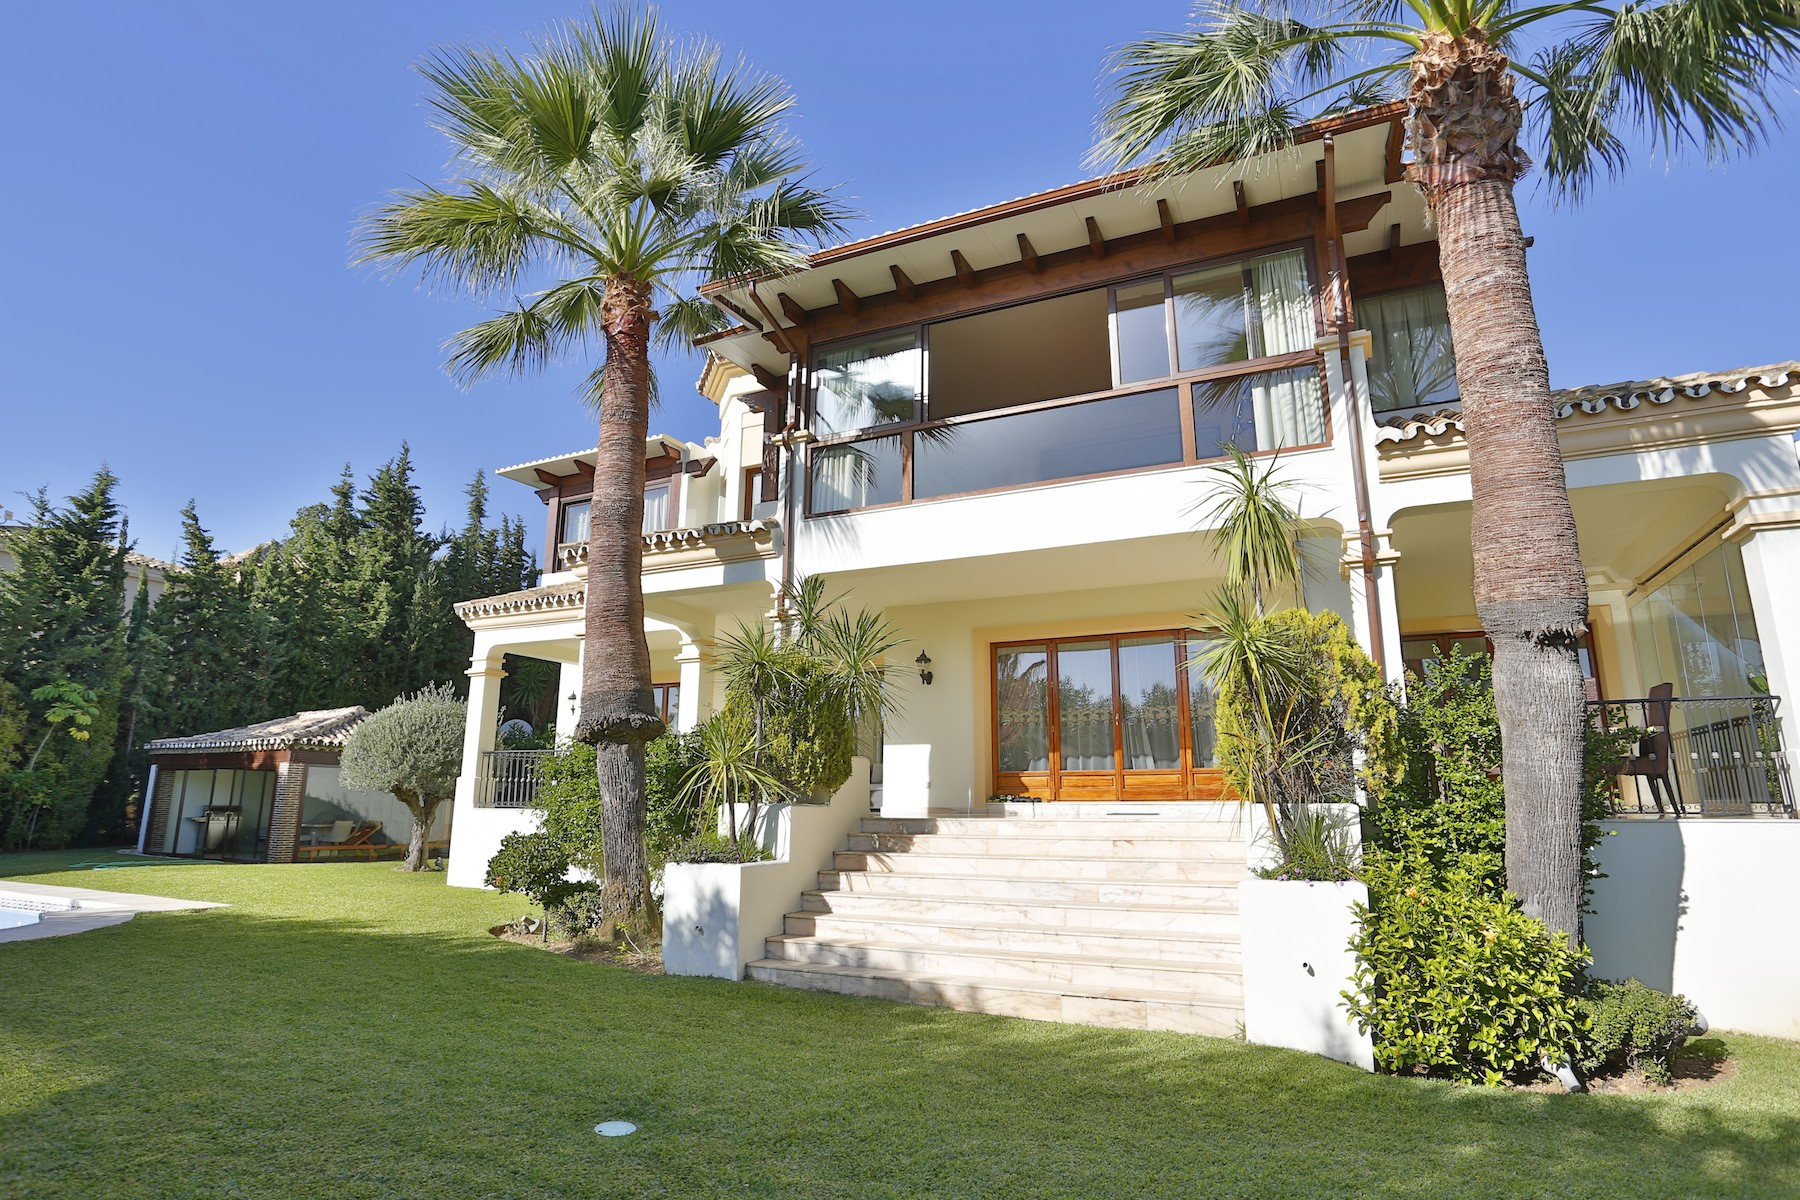 Maison unifamiliale pour l à vendre à Elegant villa situated in the best sought after residential area in Marbella Sierra Blanca, Marbella, Costa Del Sol, 29600 Espagne